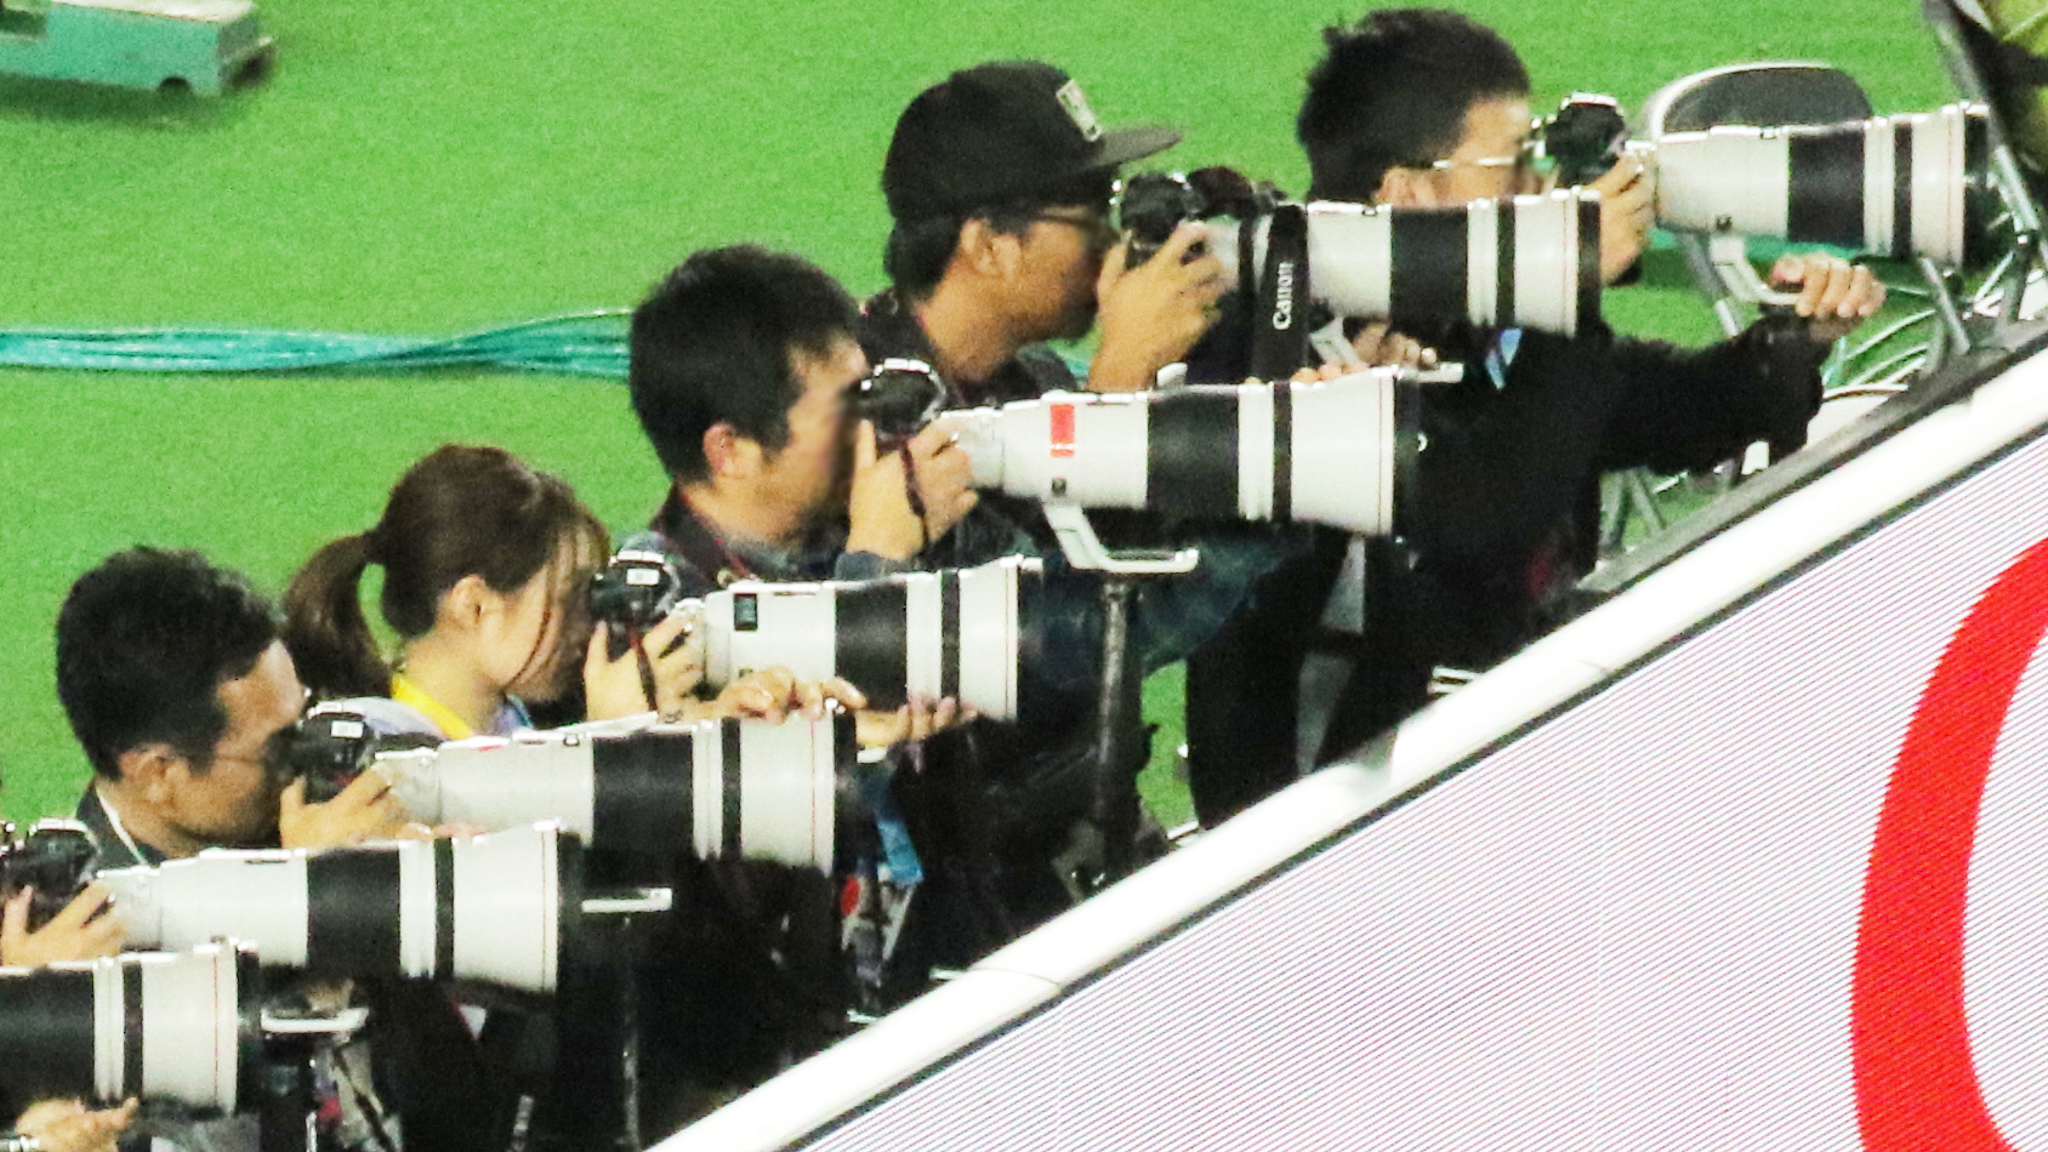 Canon Rugby World Cup 2019